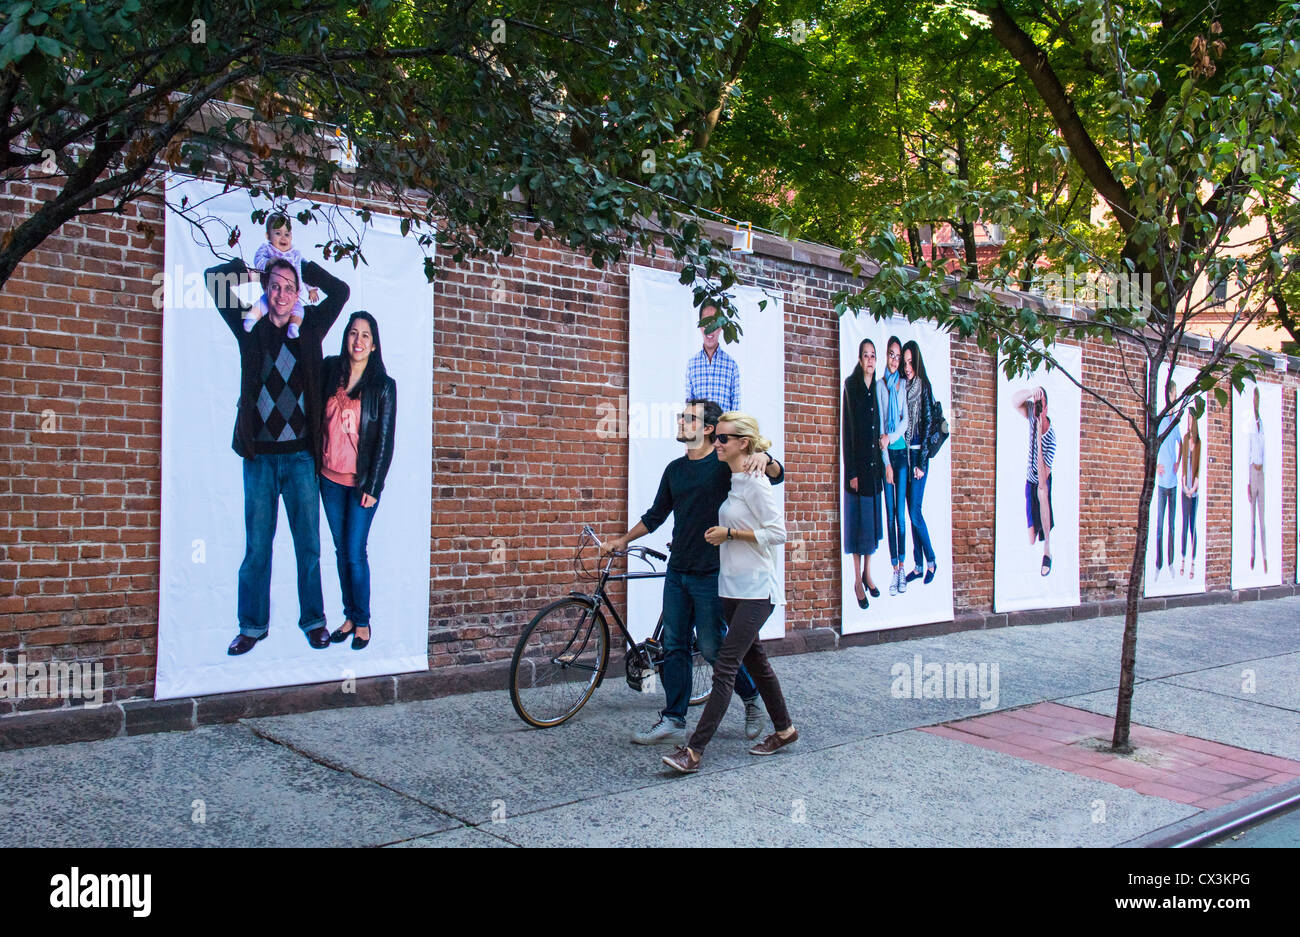 On Prince Street in the Nolita section of New York City, a couple with a bicycle view a wall of giant photo blowups - Stock Image